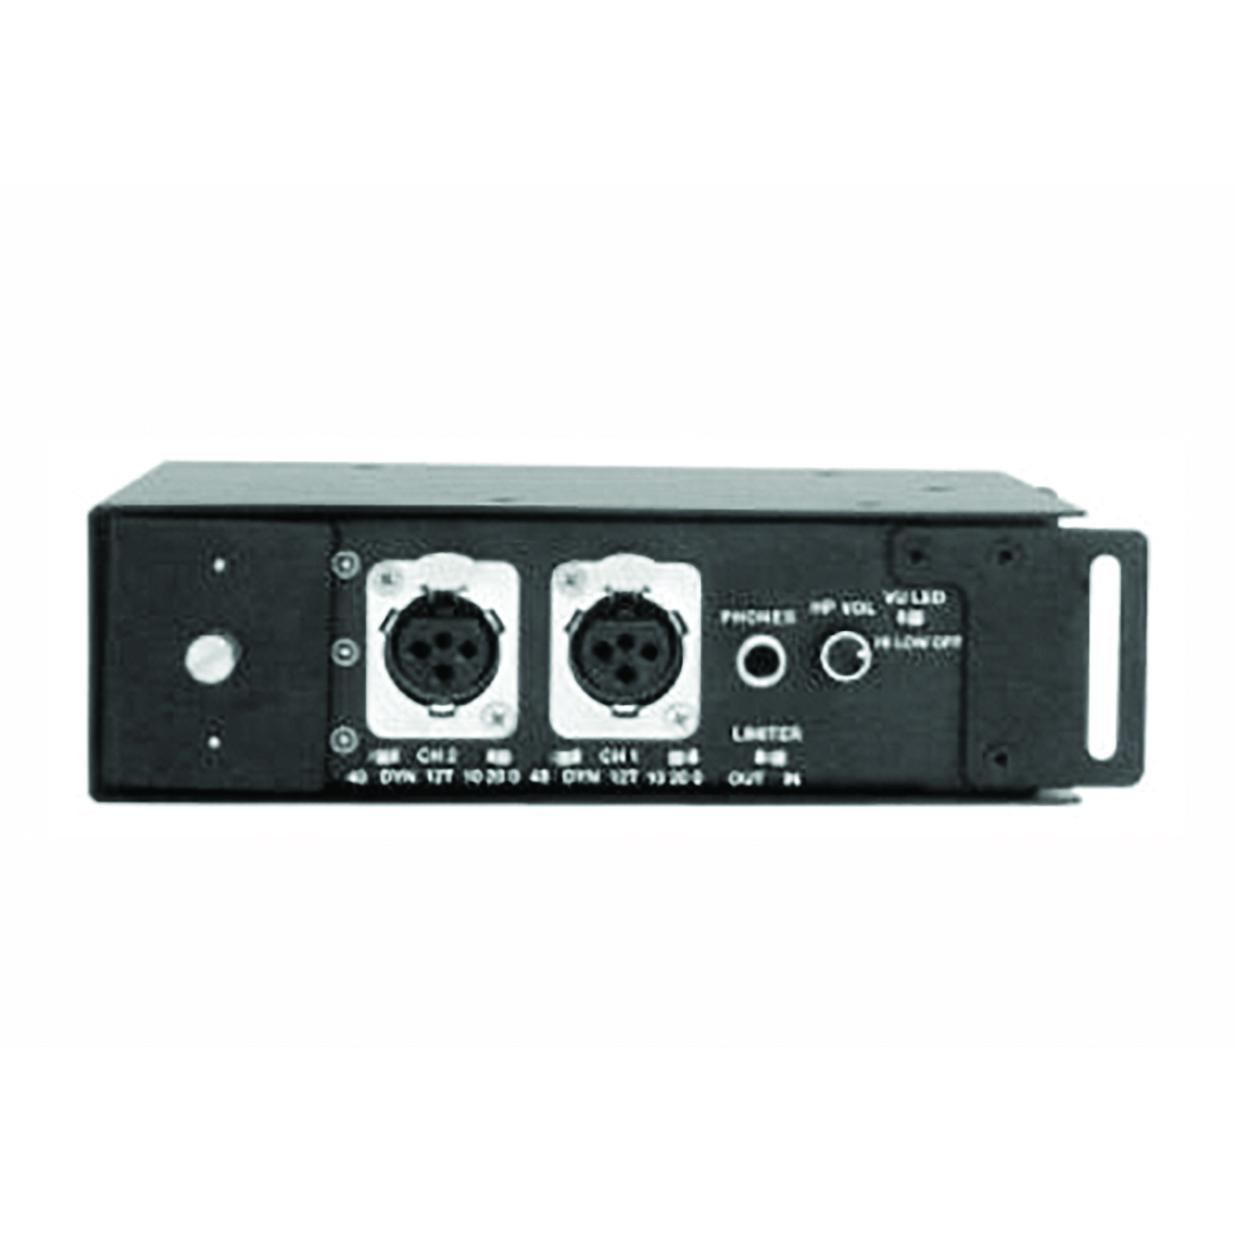 PRG Proshop - Wendt X2 Two-Channel Mixer